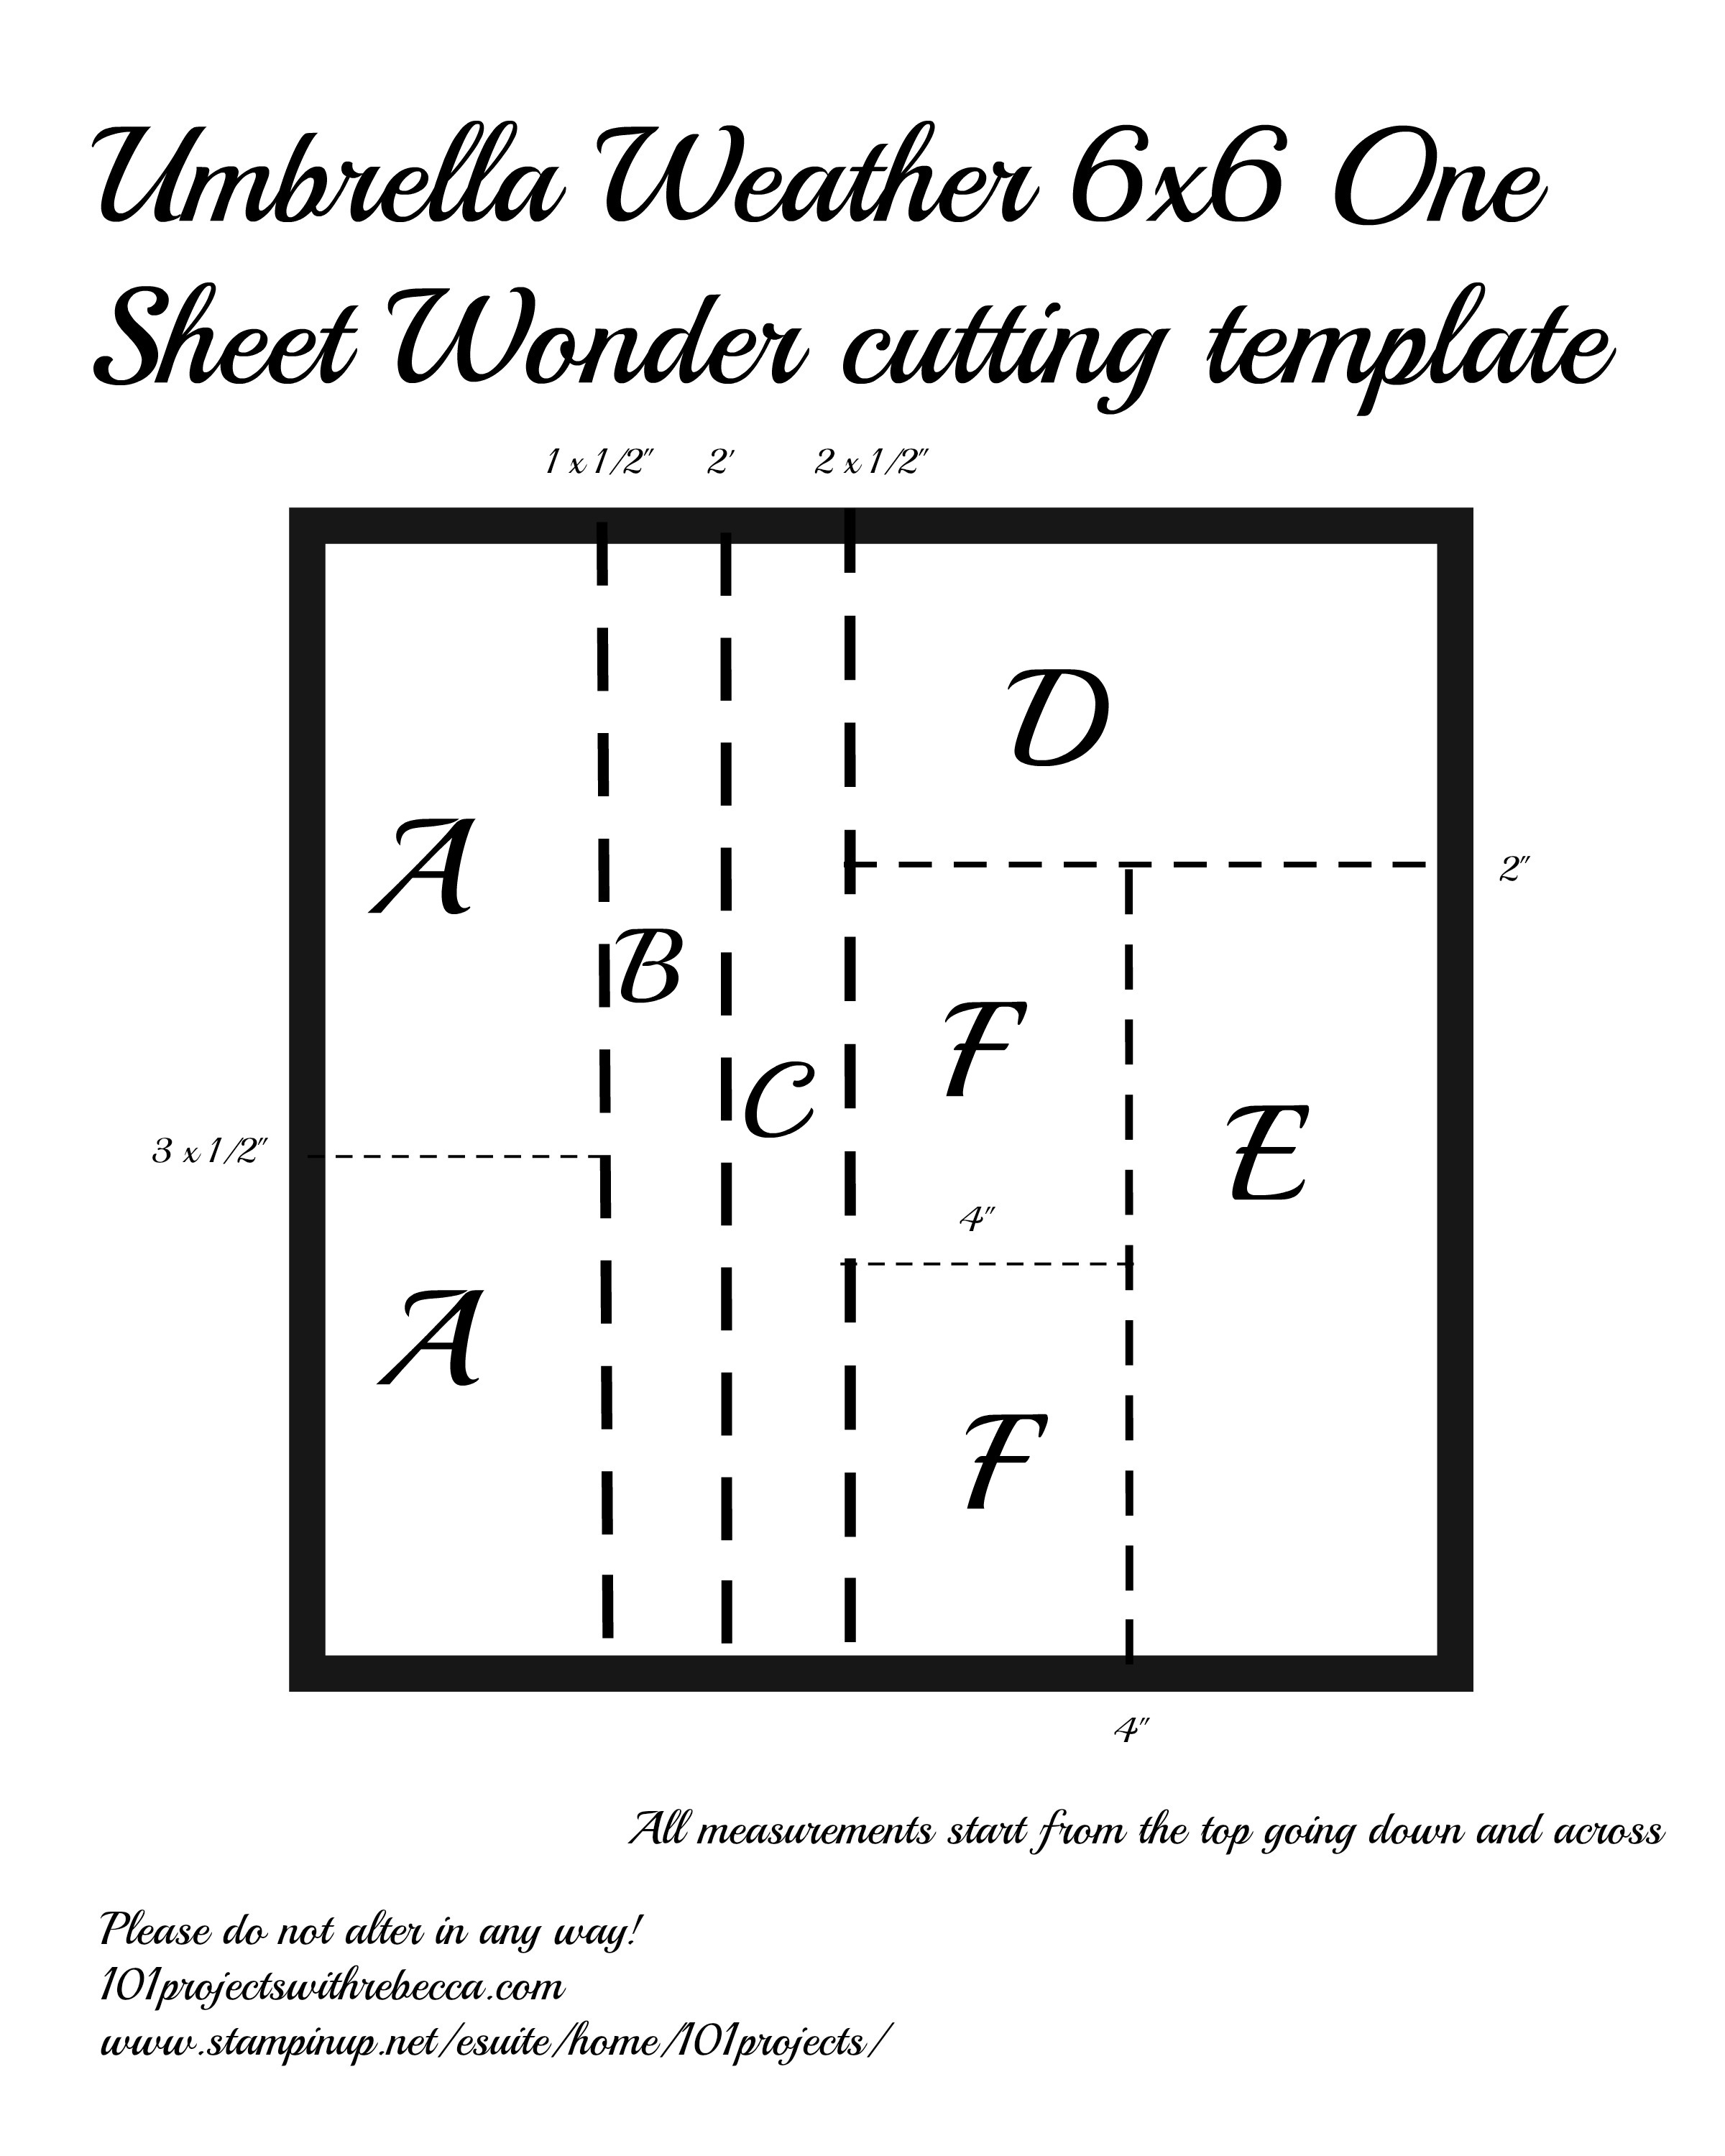 Stampin' Up! One Sheet Wonder OSW template